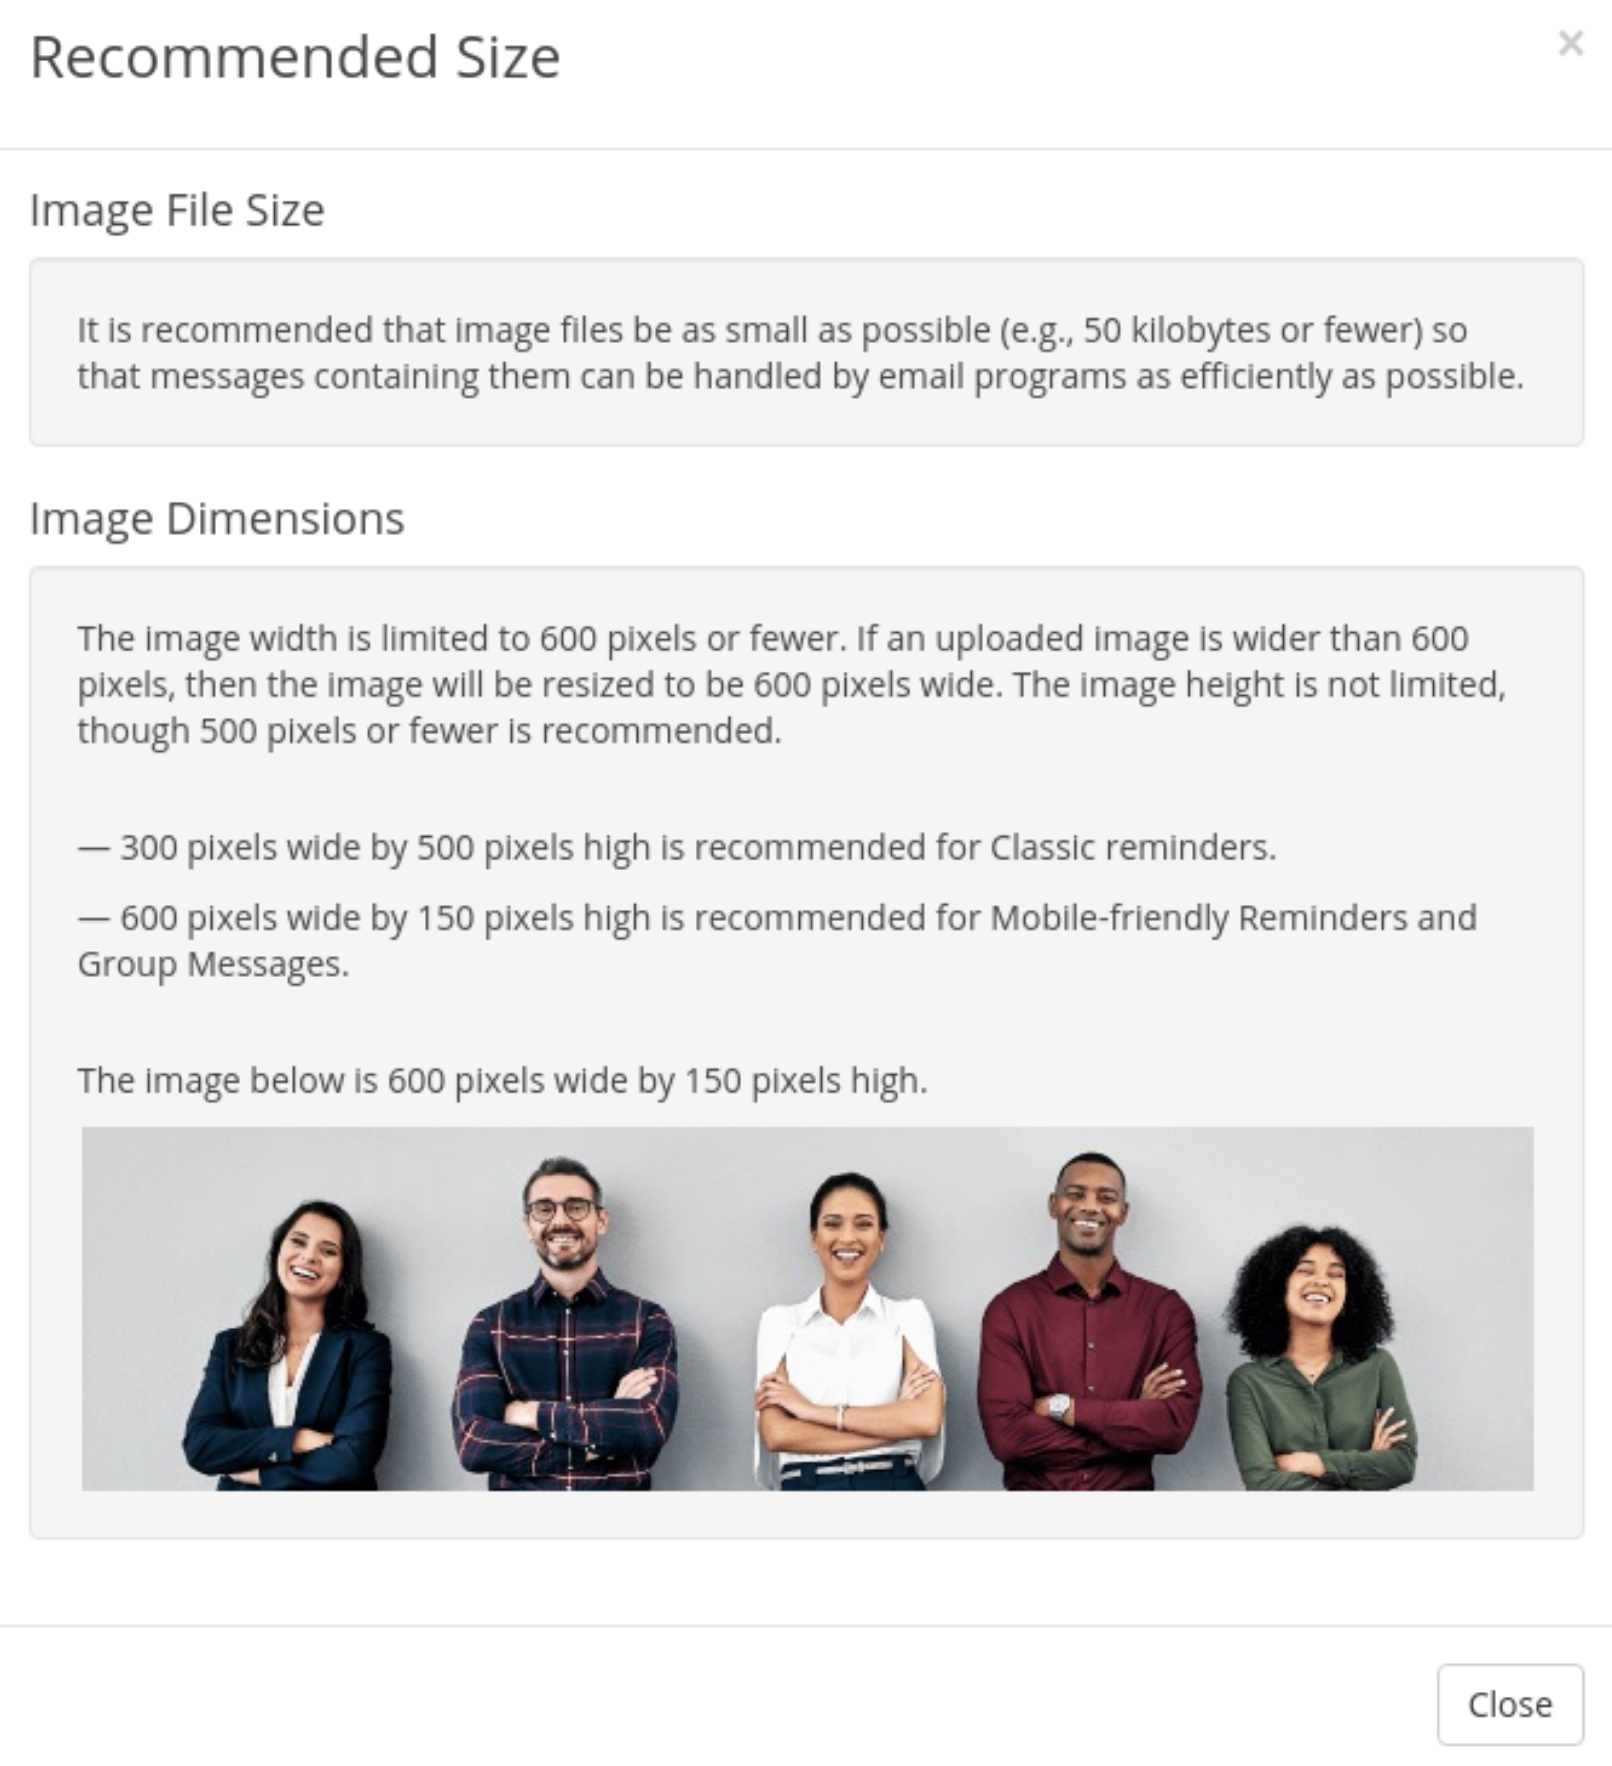 image size recommendations for reminders and group messages